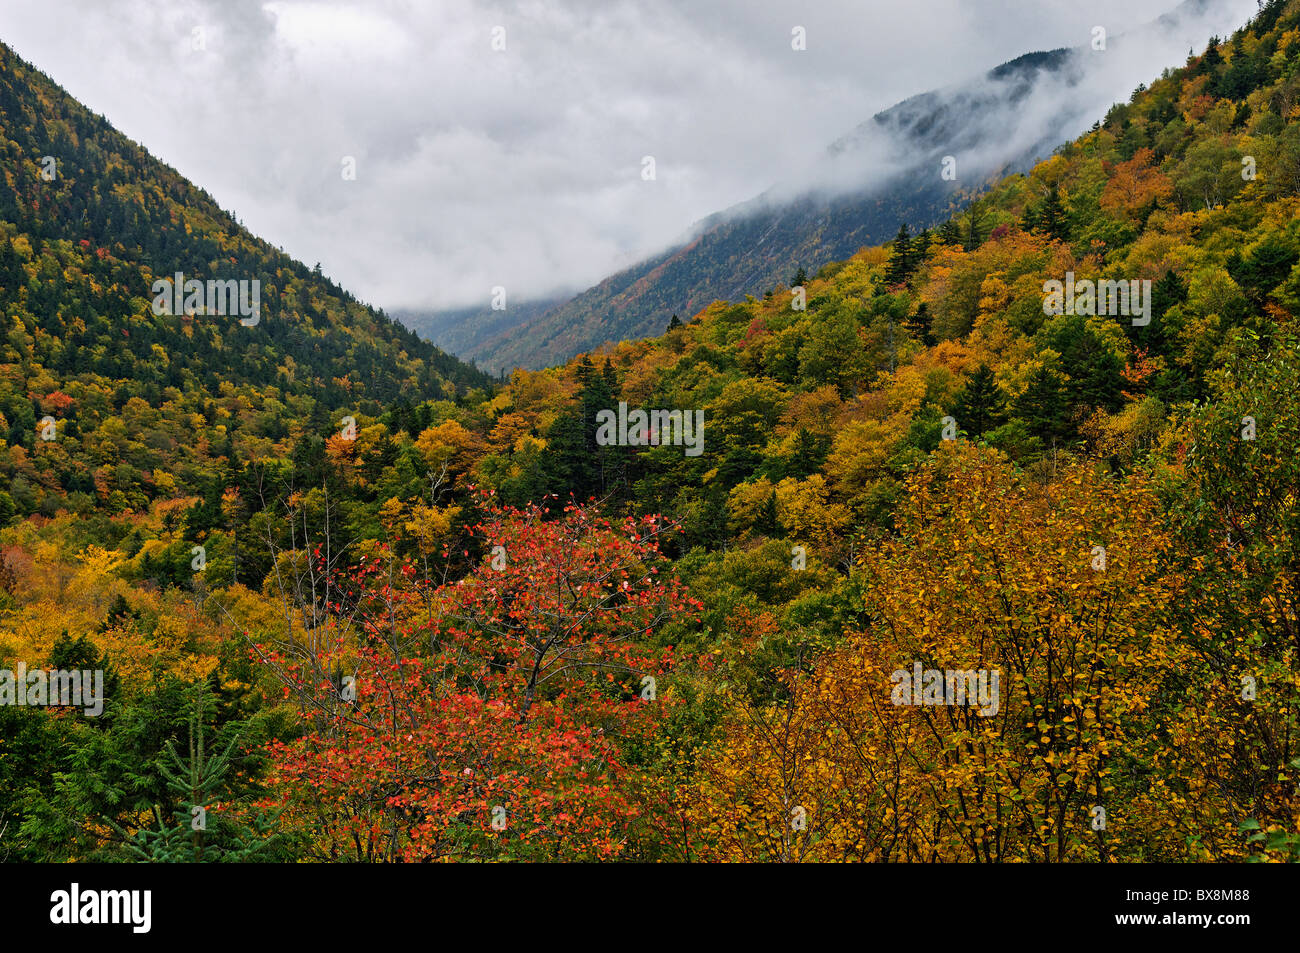 Autumn Color in Crawford Notch in the White Mountains National Forest in Carroll County, New Hampshire - Stock Image